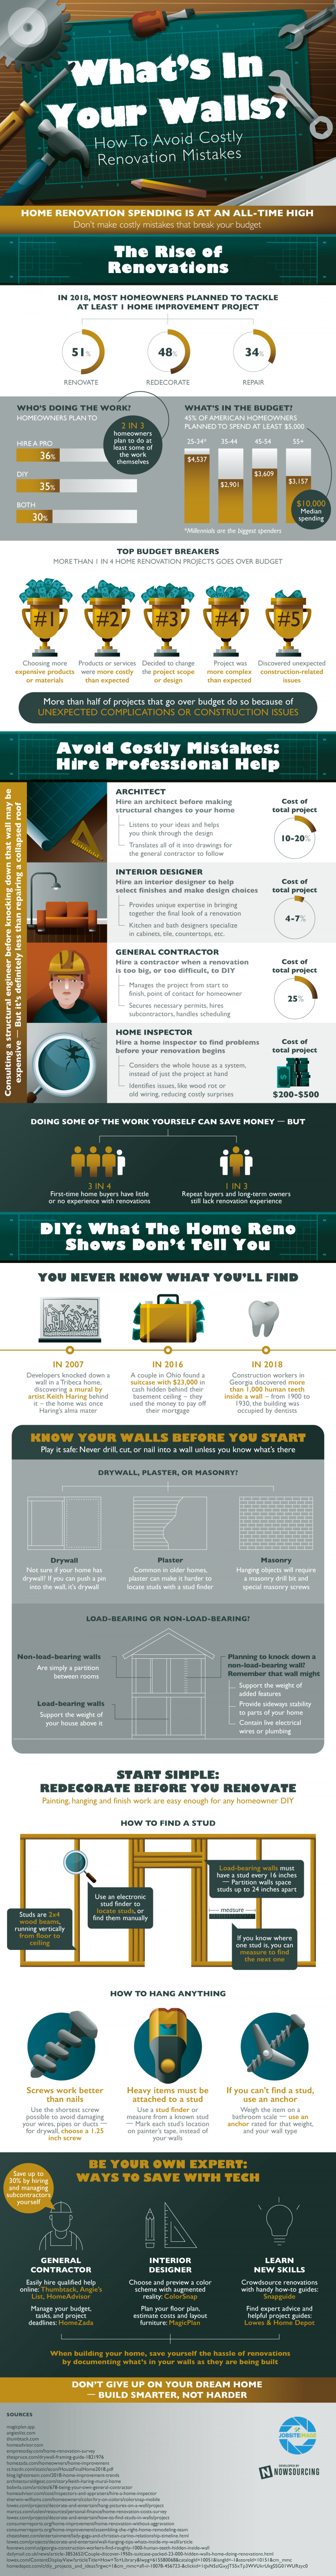 What's In Your Walls? Infographic